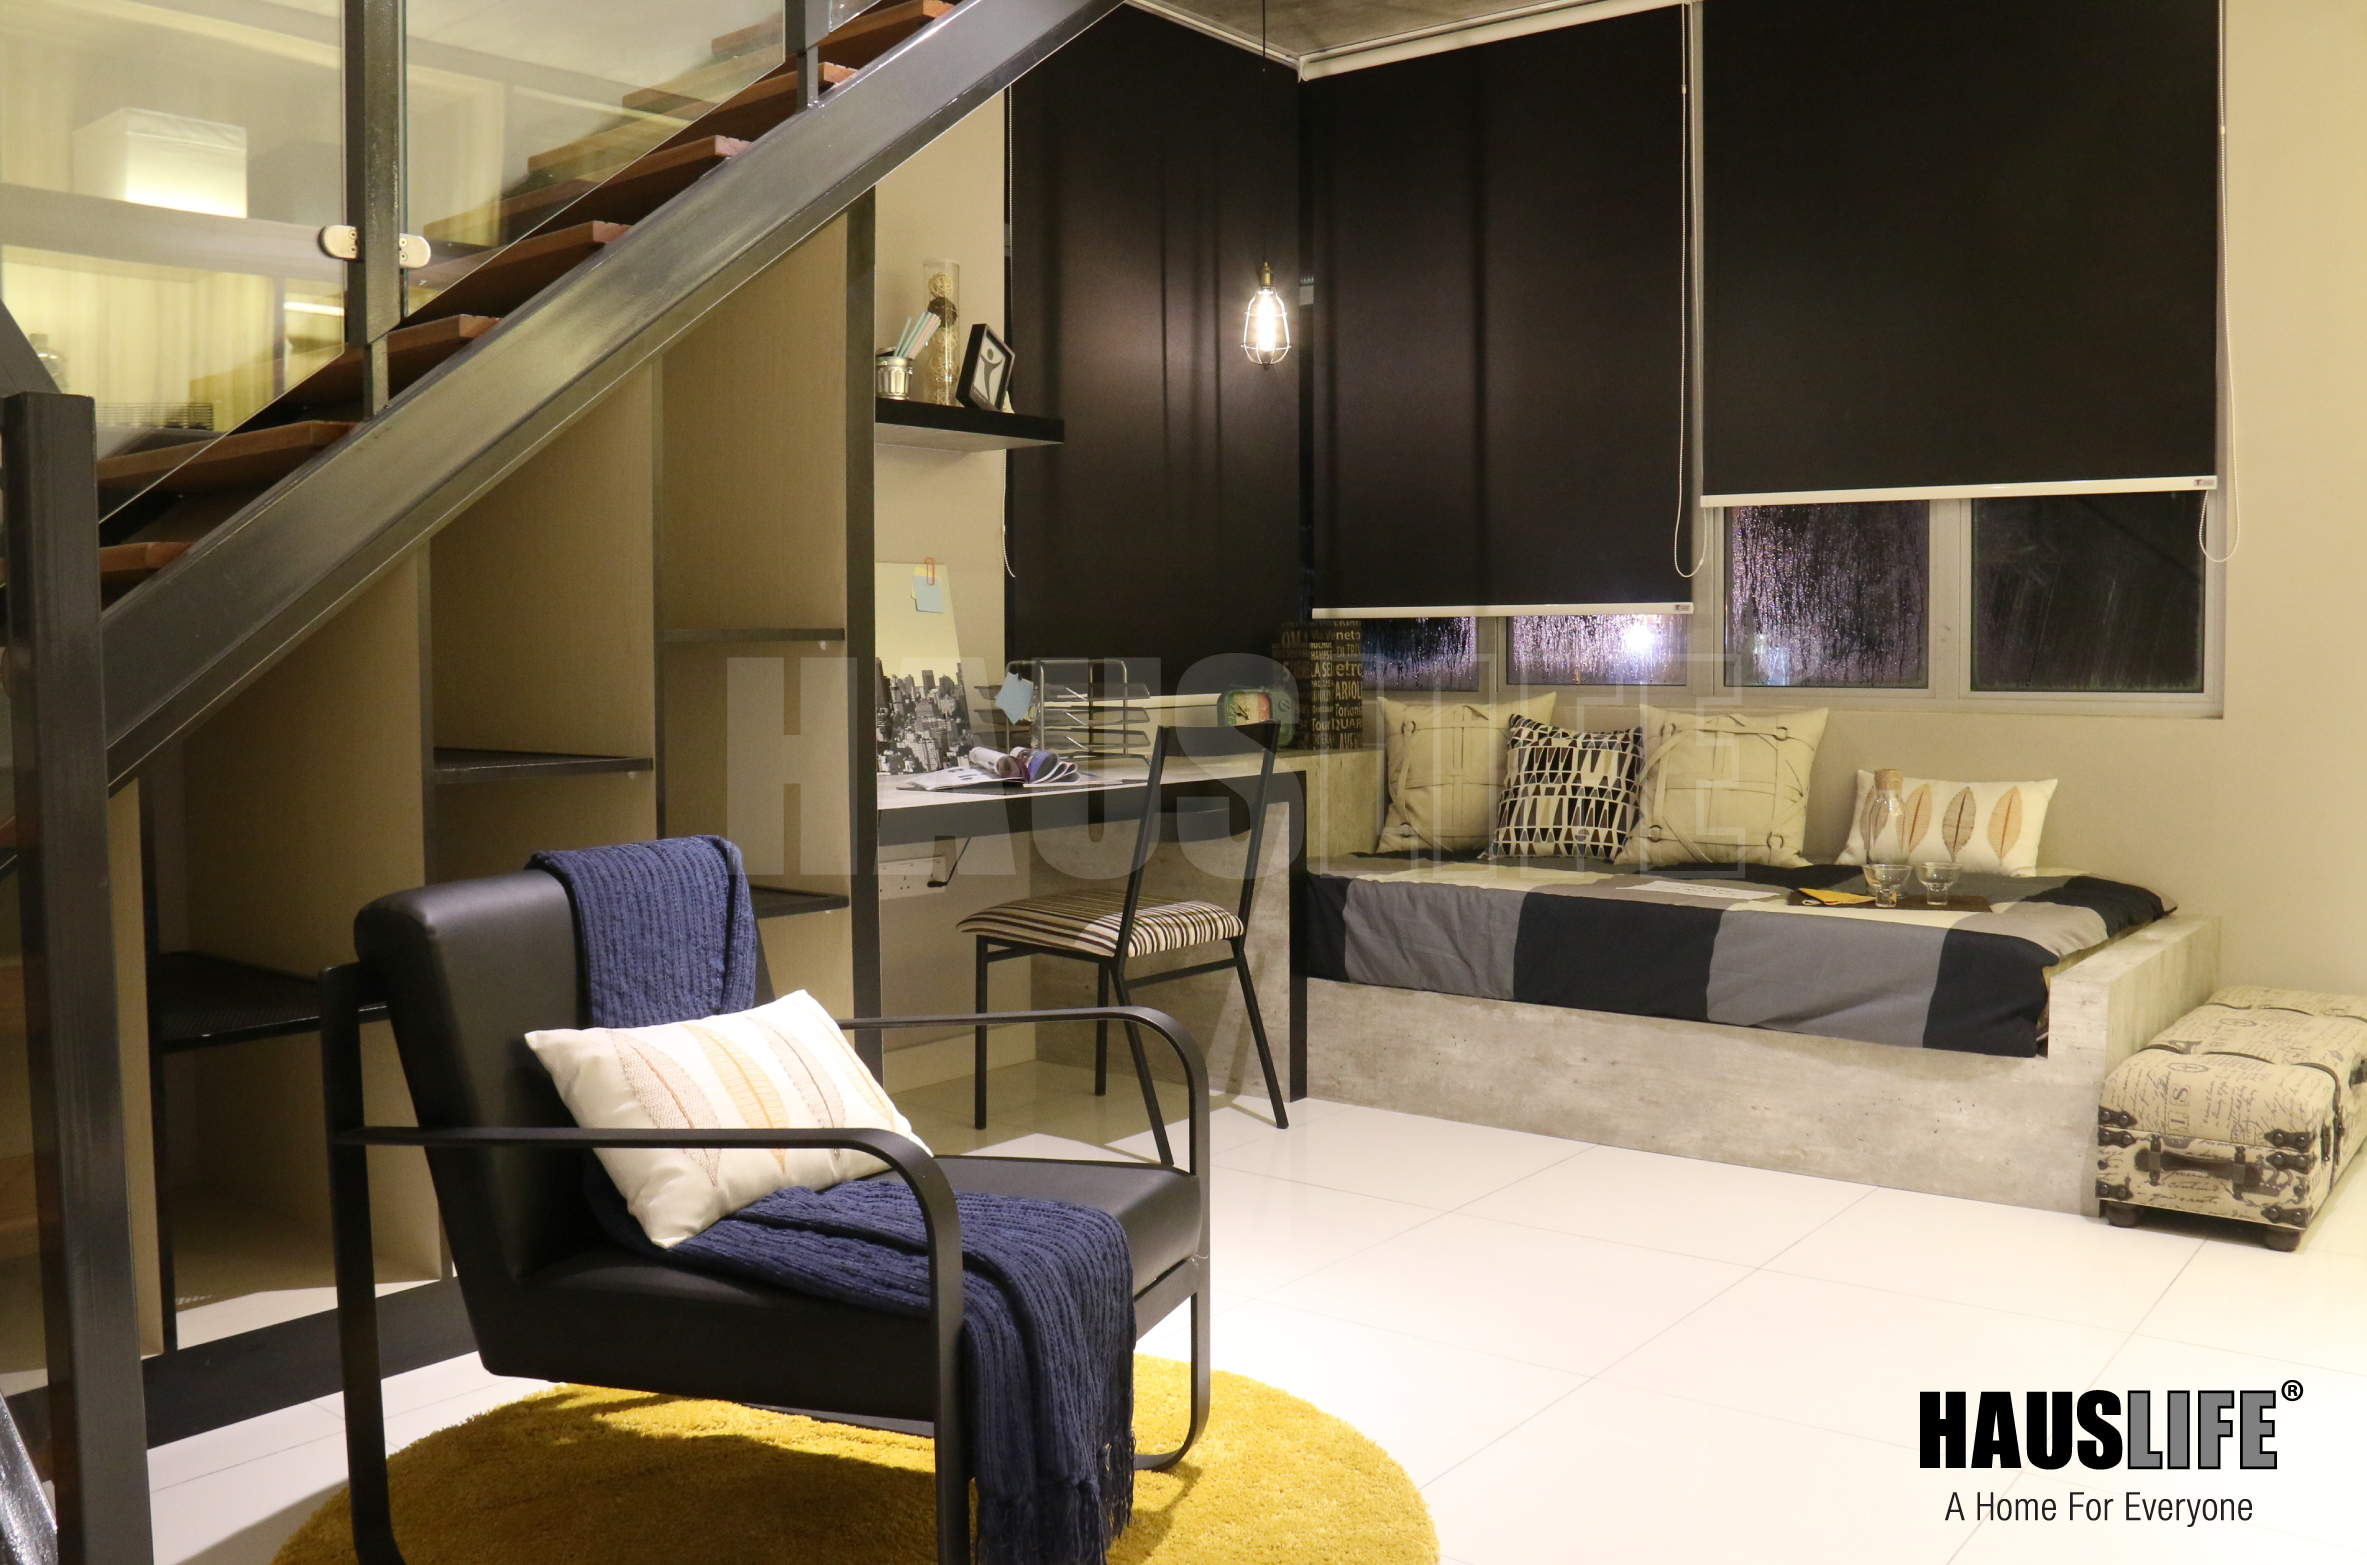 Our Project Hauslife